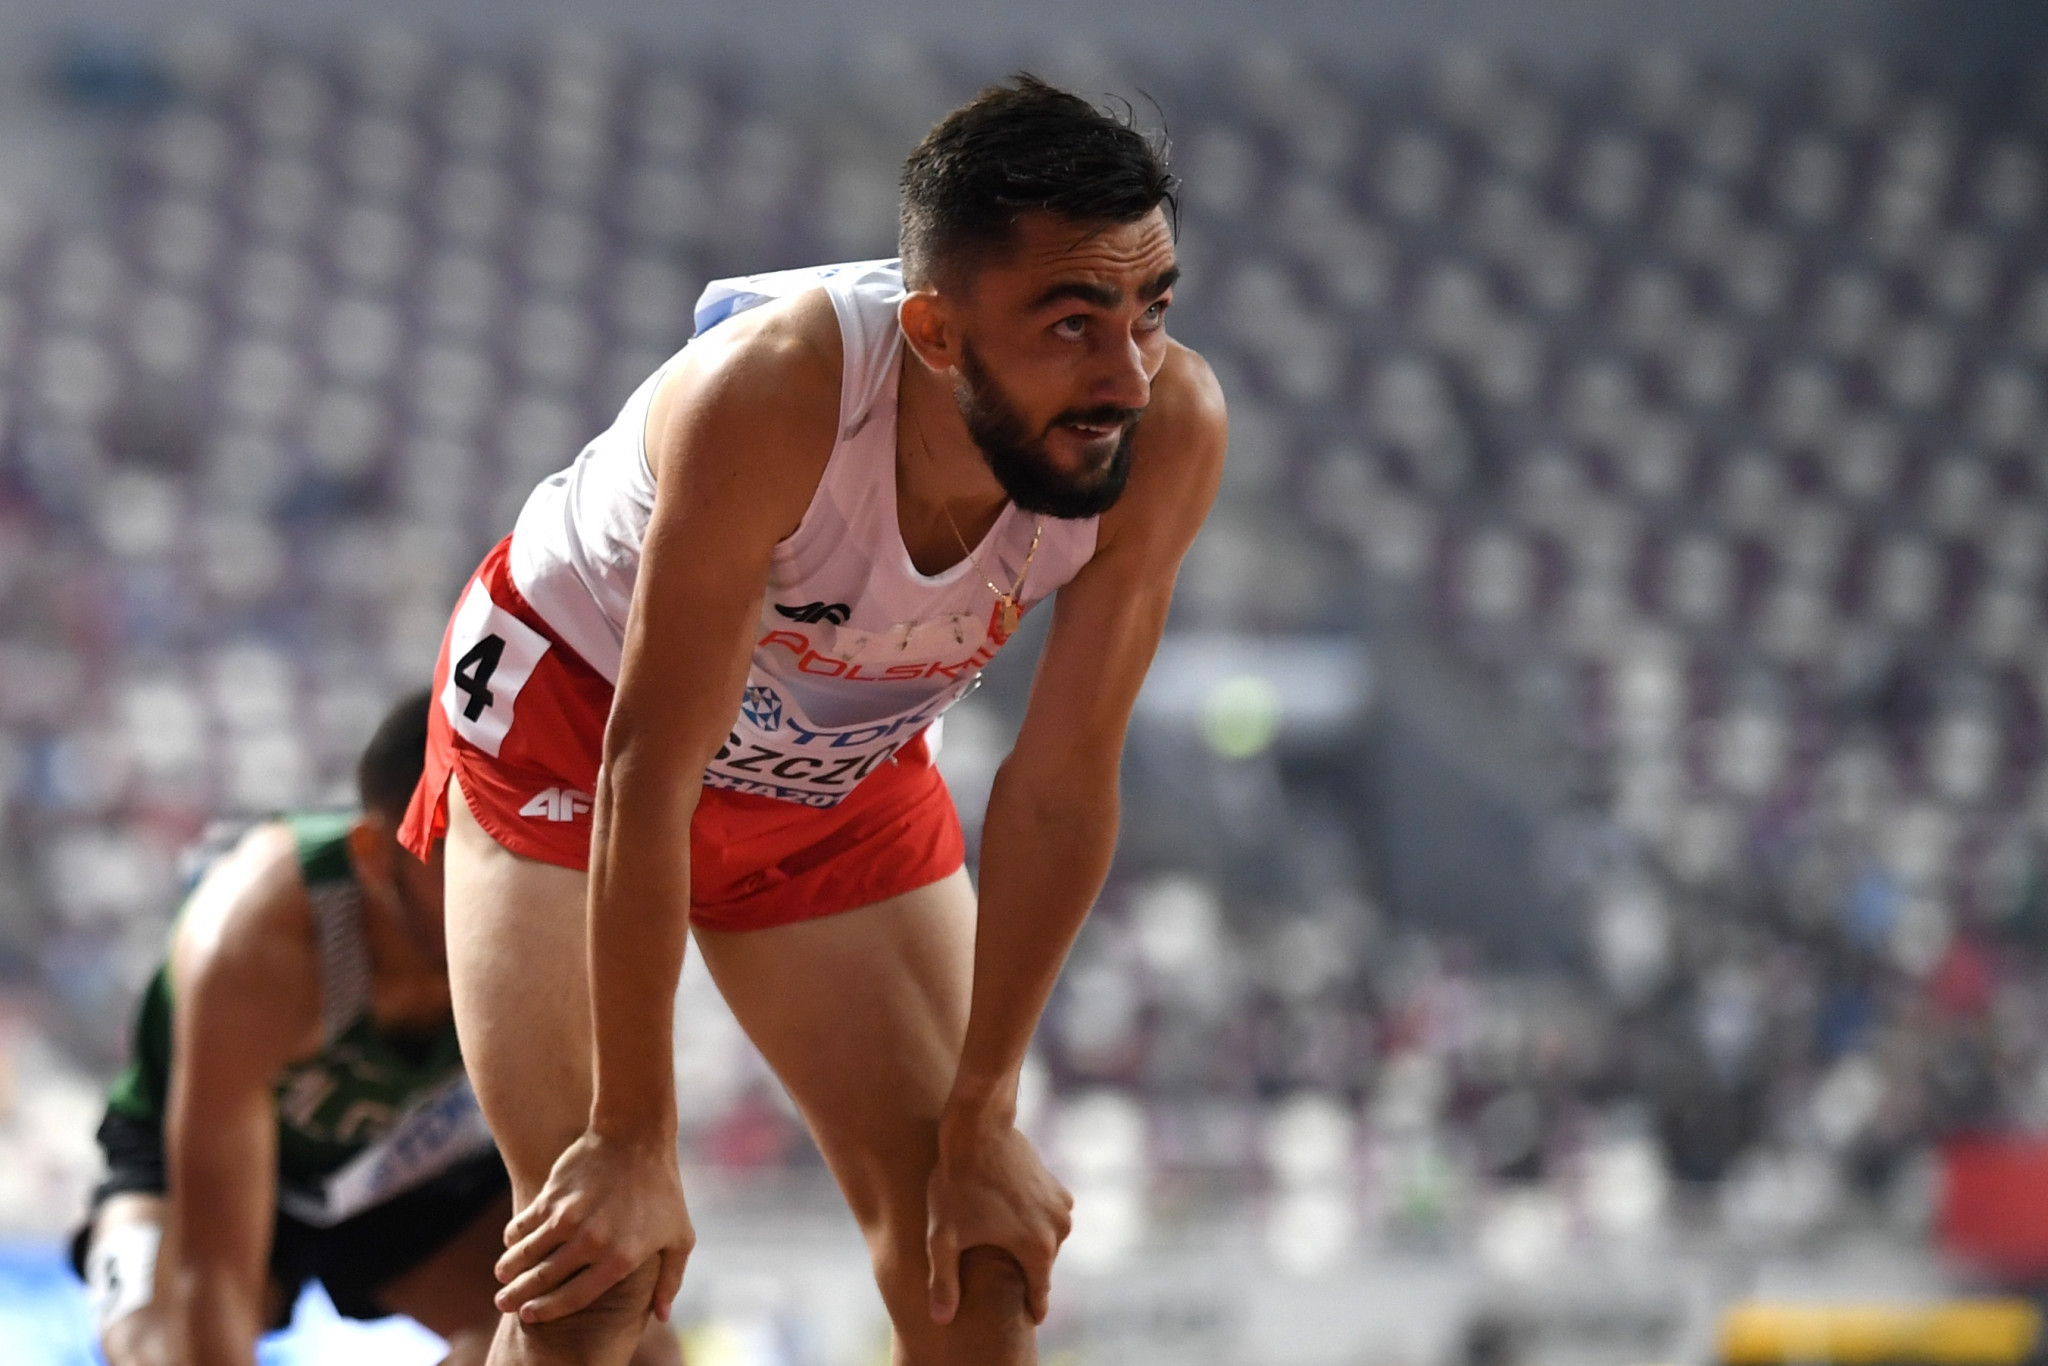 Kszczot out for revenge on home soil as World Athletics Indoor Tour visits Poland